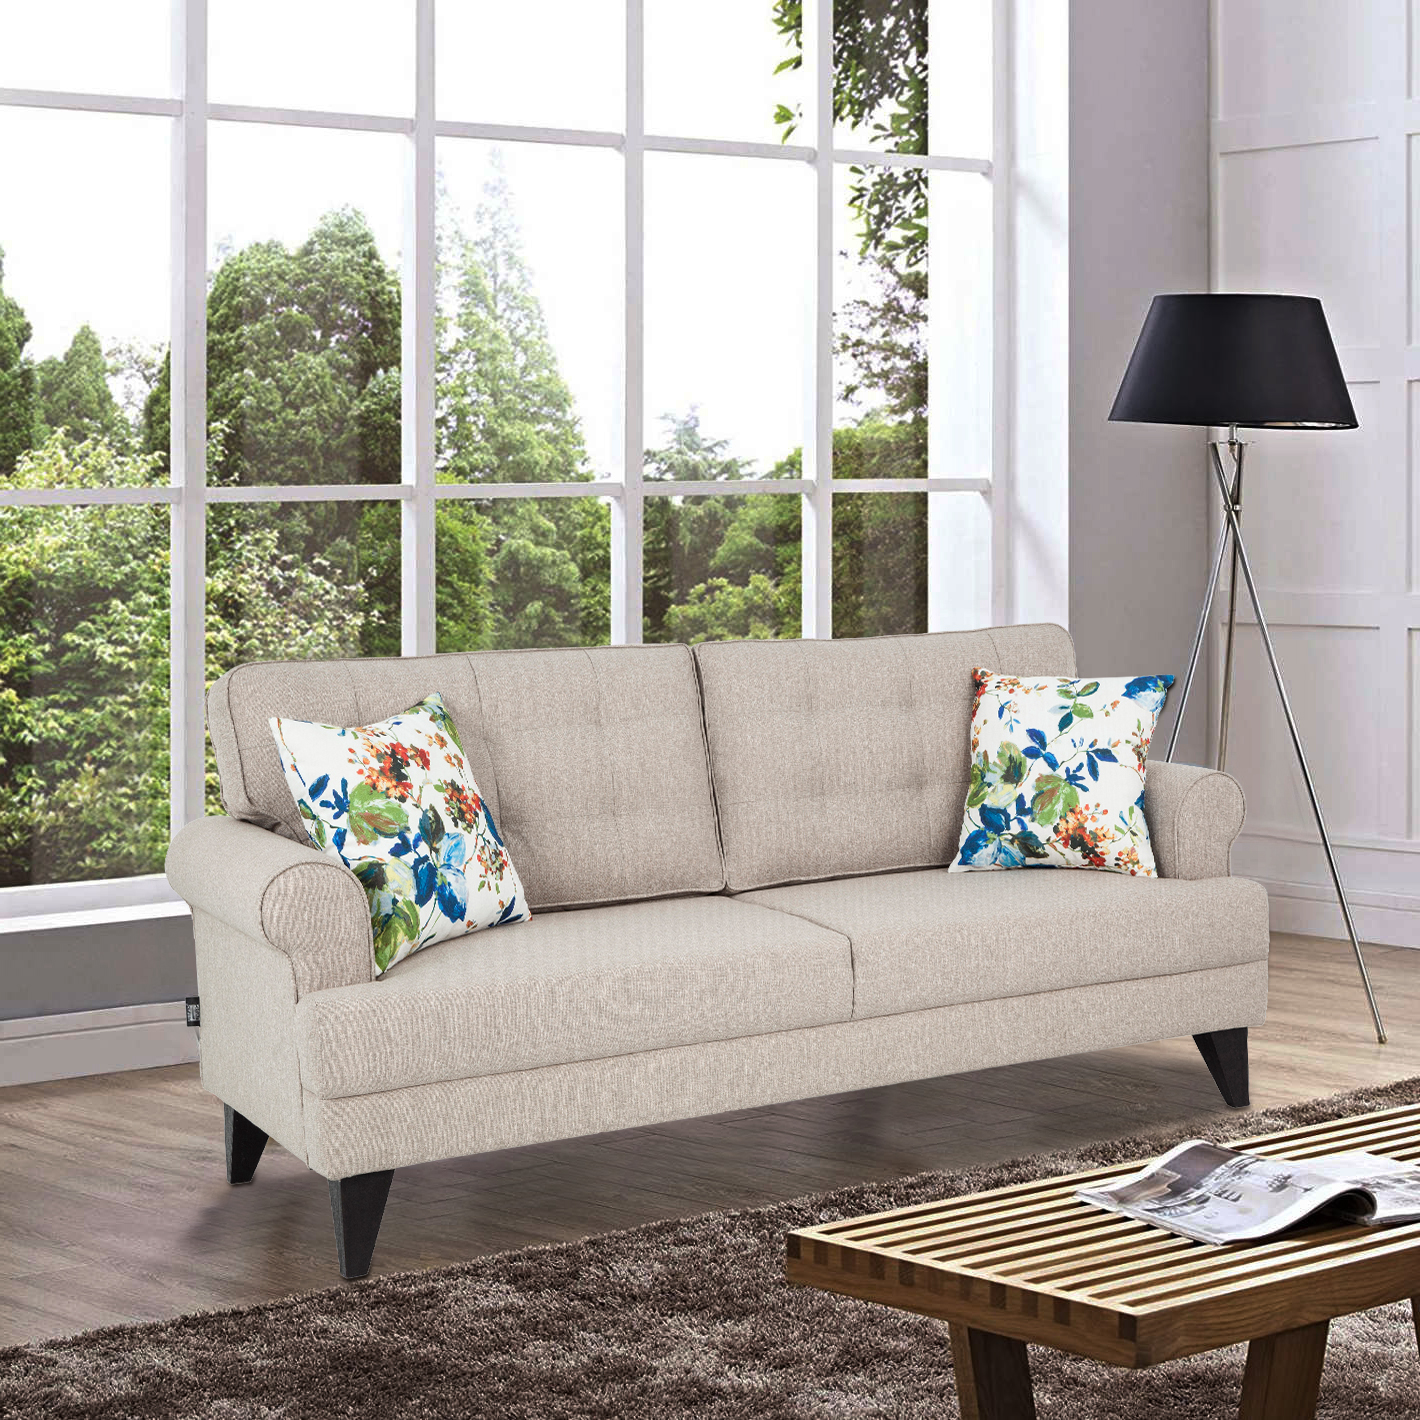 Miller Fabric Three Seater Sofa in Beige Colour by HomeTown